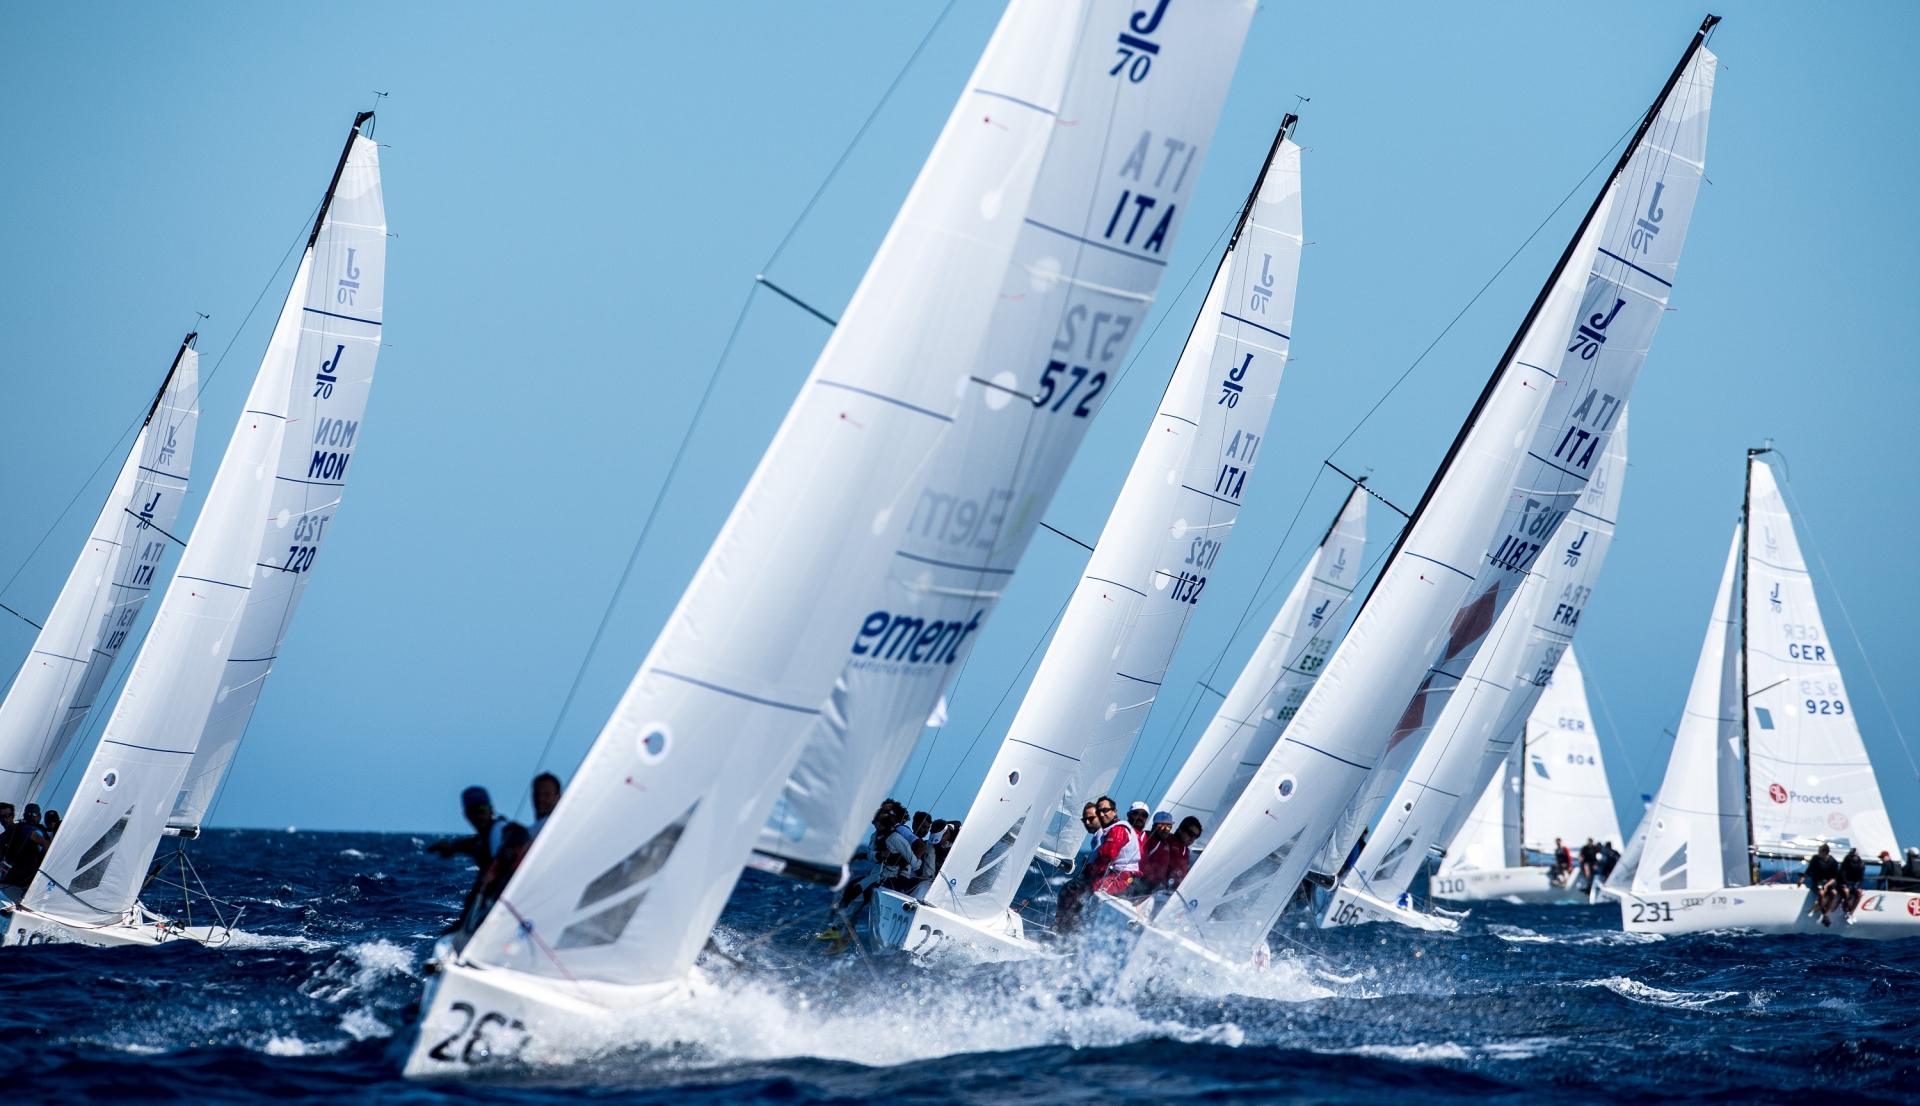 Audi J/70 World Championship - Video Highlights online - NEWS - Yacht Club Costa Smeralda